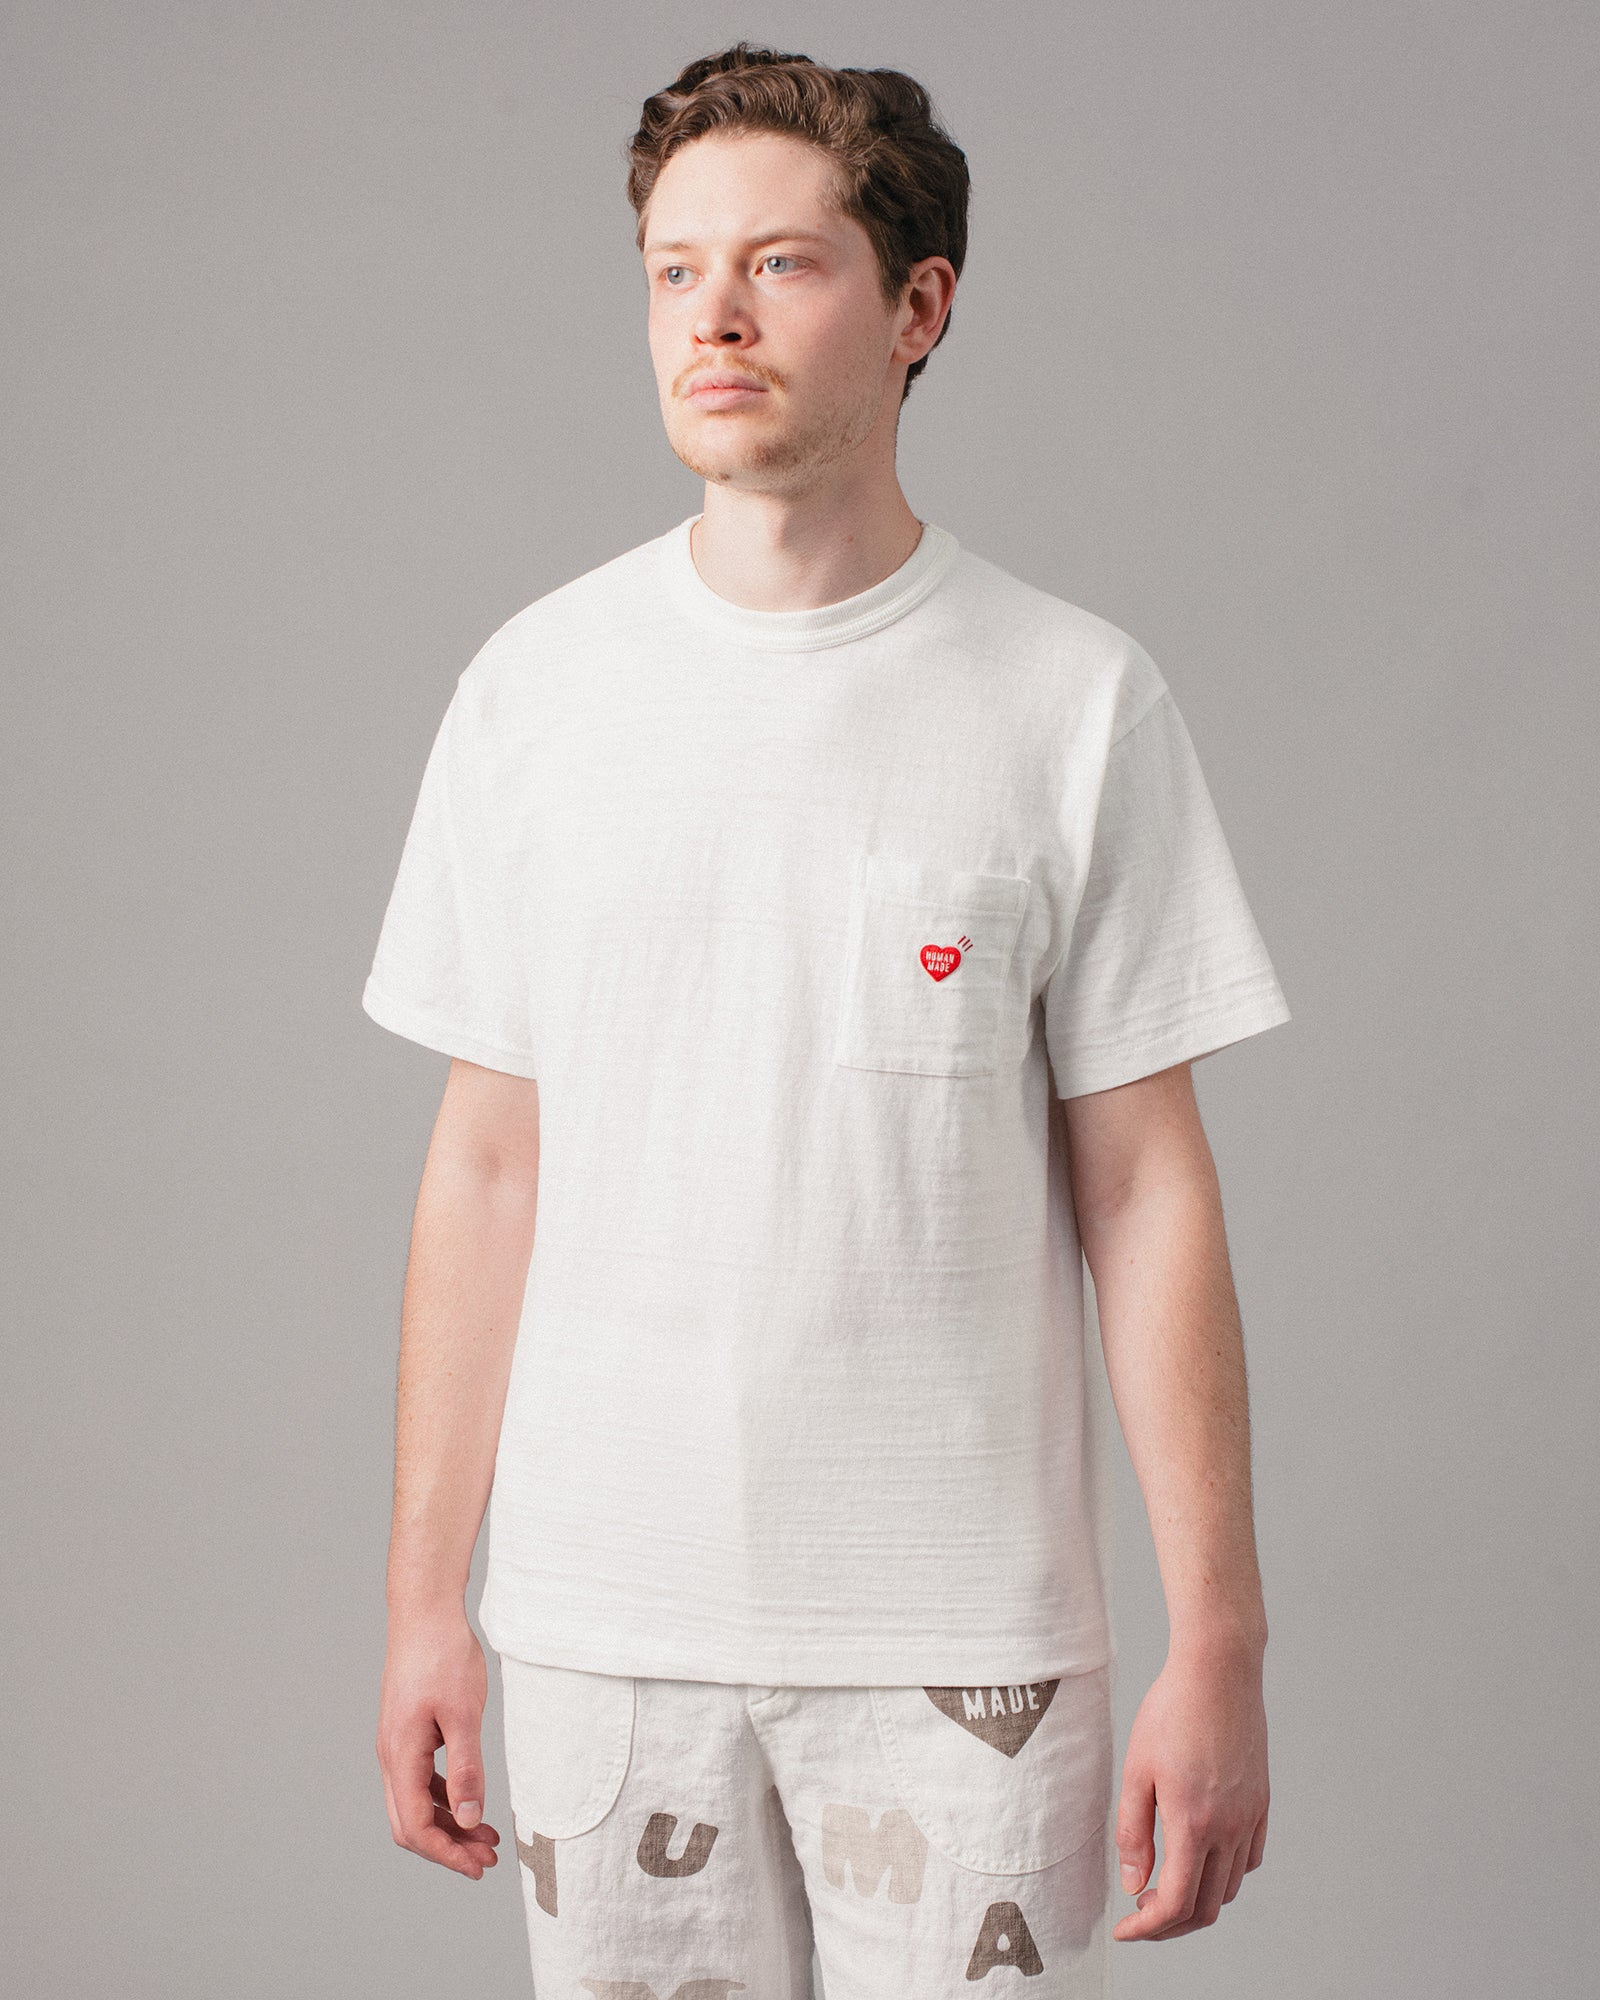 Polar Bear Pocket T-Shirt #1 White